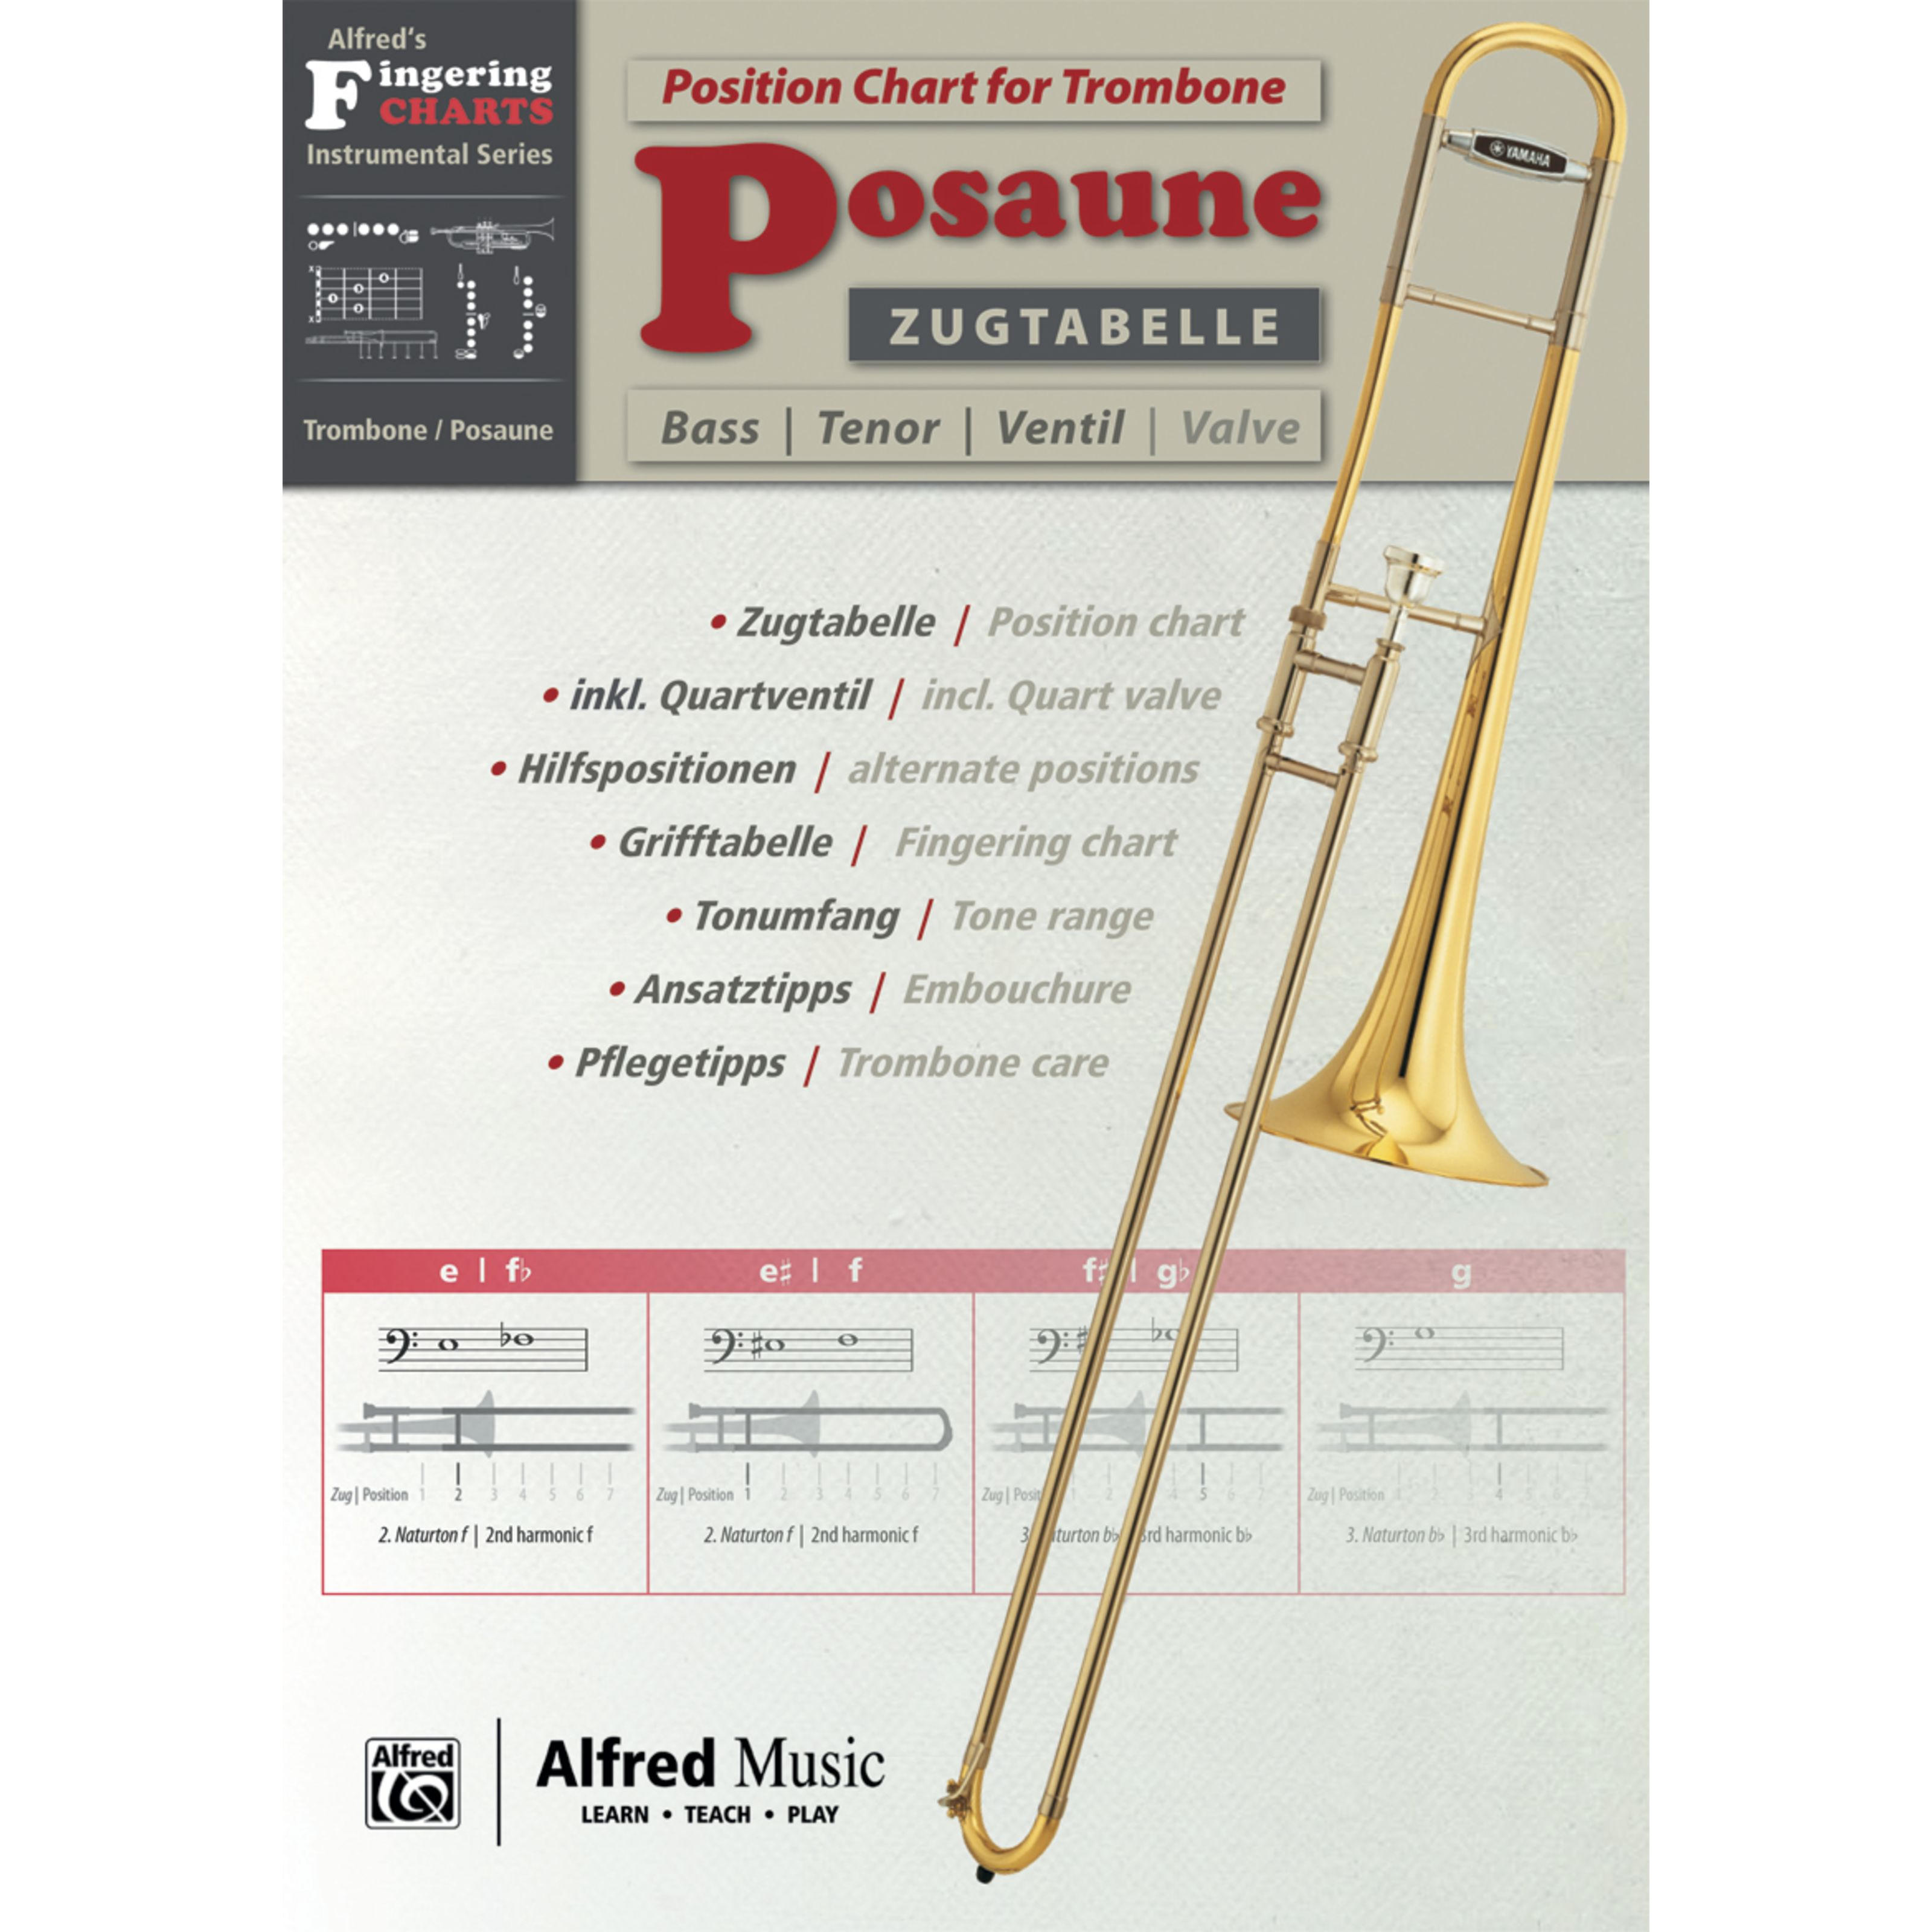 Alfred Music - Grifftabelle Posaune 00-20231G